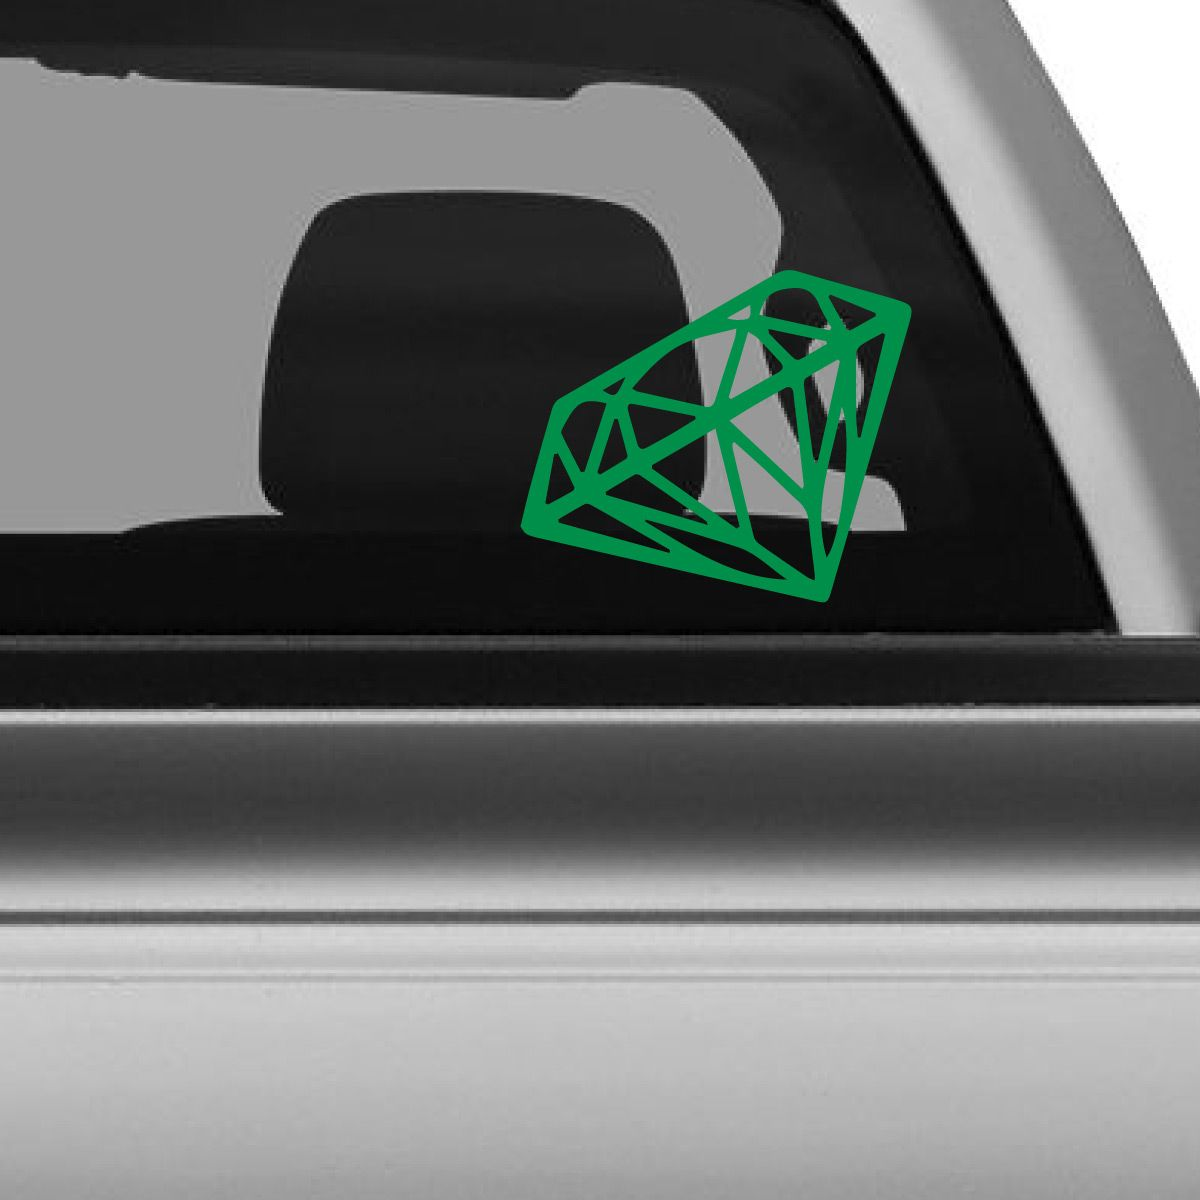 Diamond Car Decal Products Pinterest Car Decal And Products